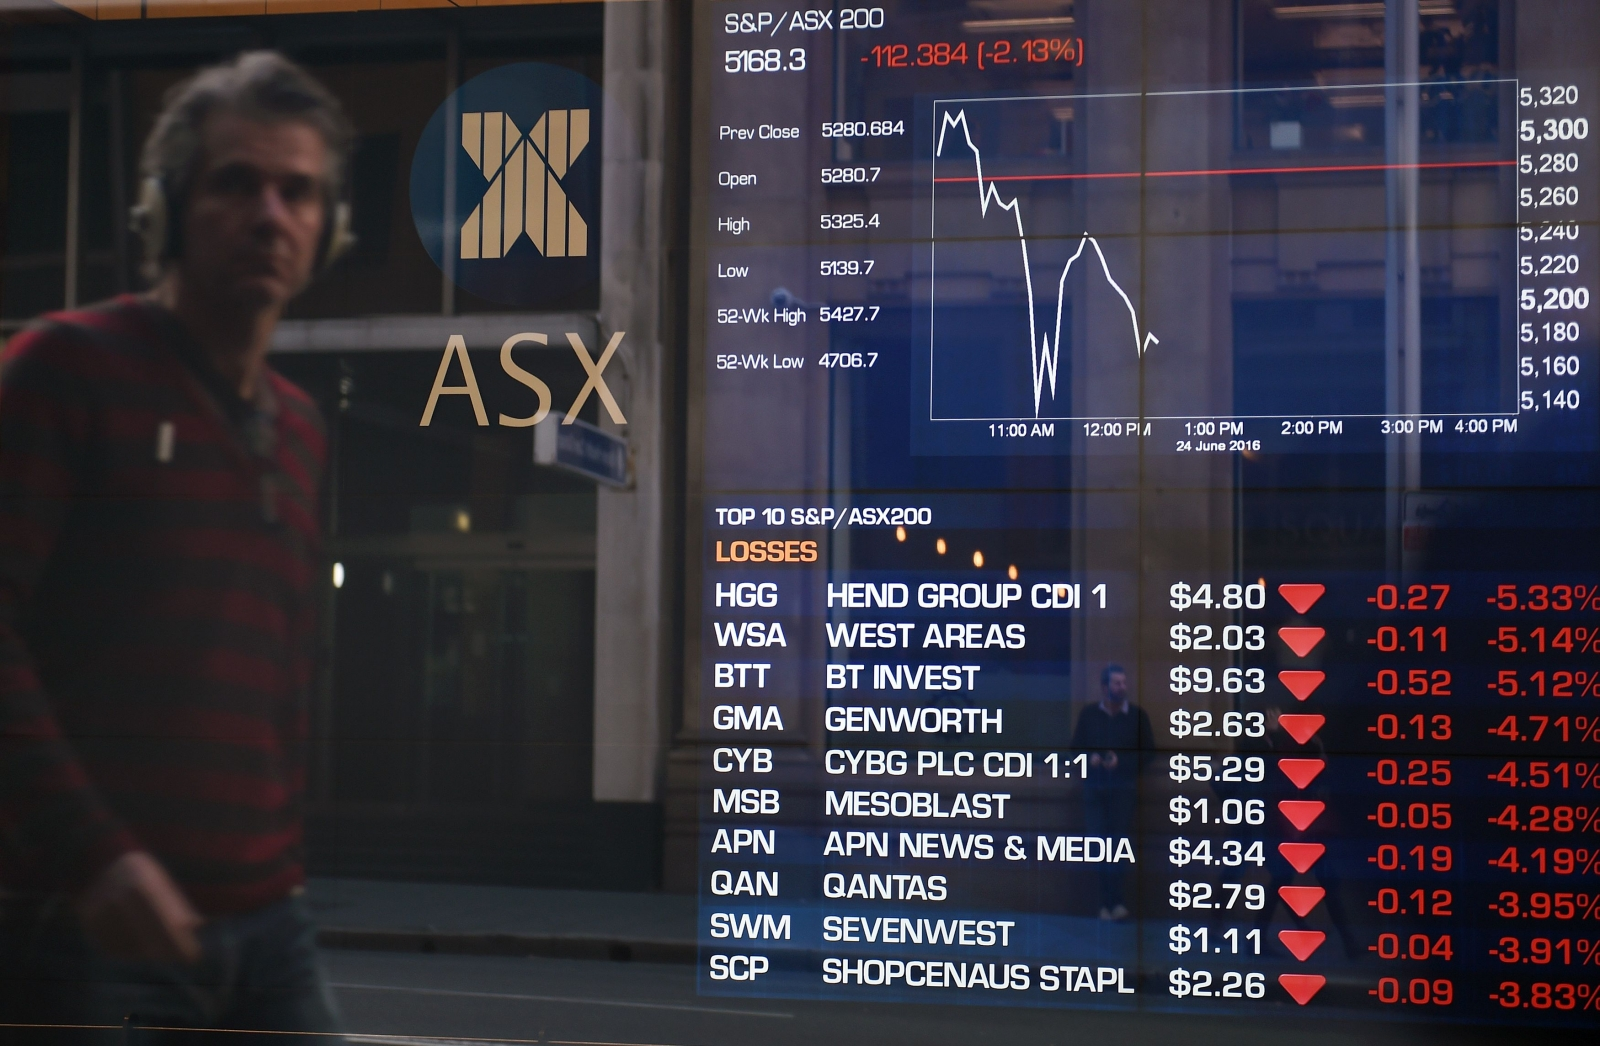 asx stock exchange